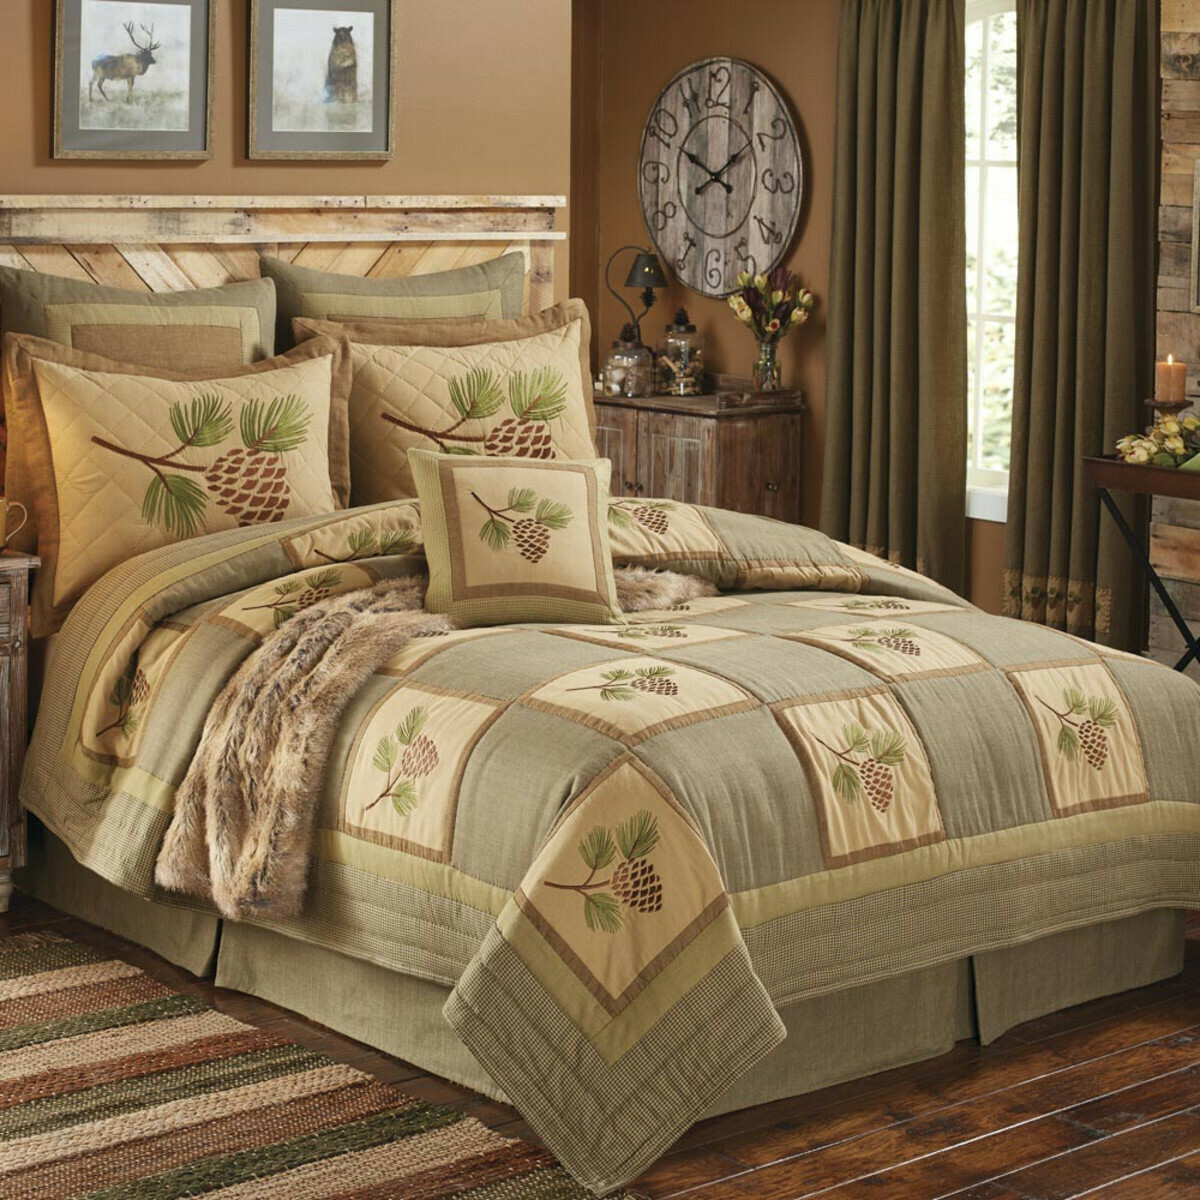 Pineview Queen Bed Skirt